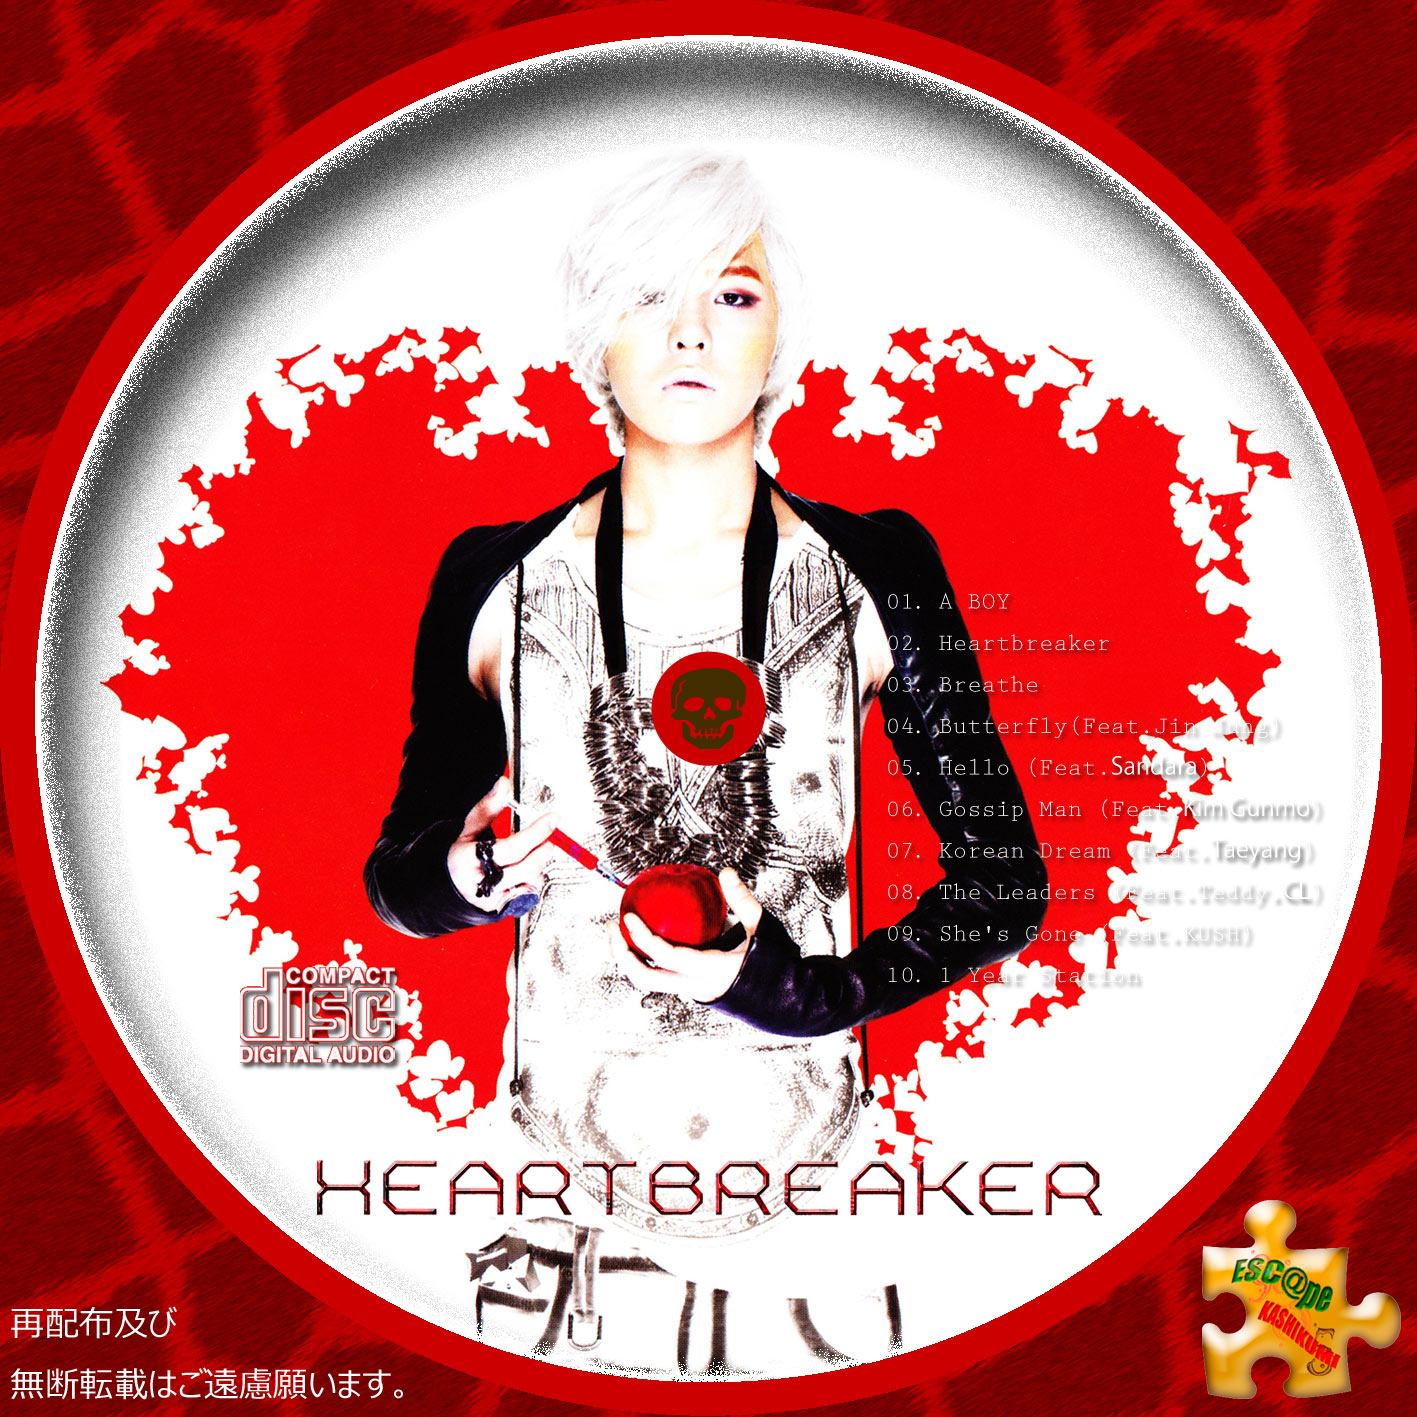 Dragon Heartbreaker Heartbreaker g dragon 1417x1417